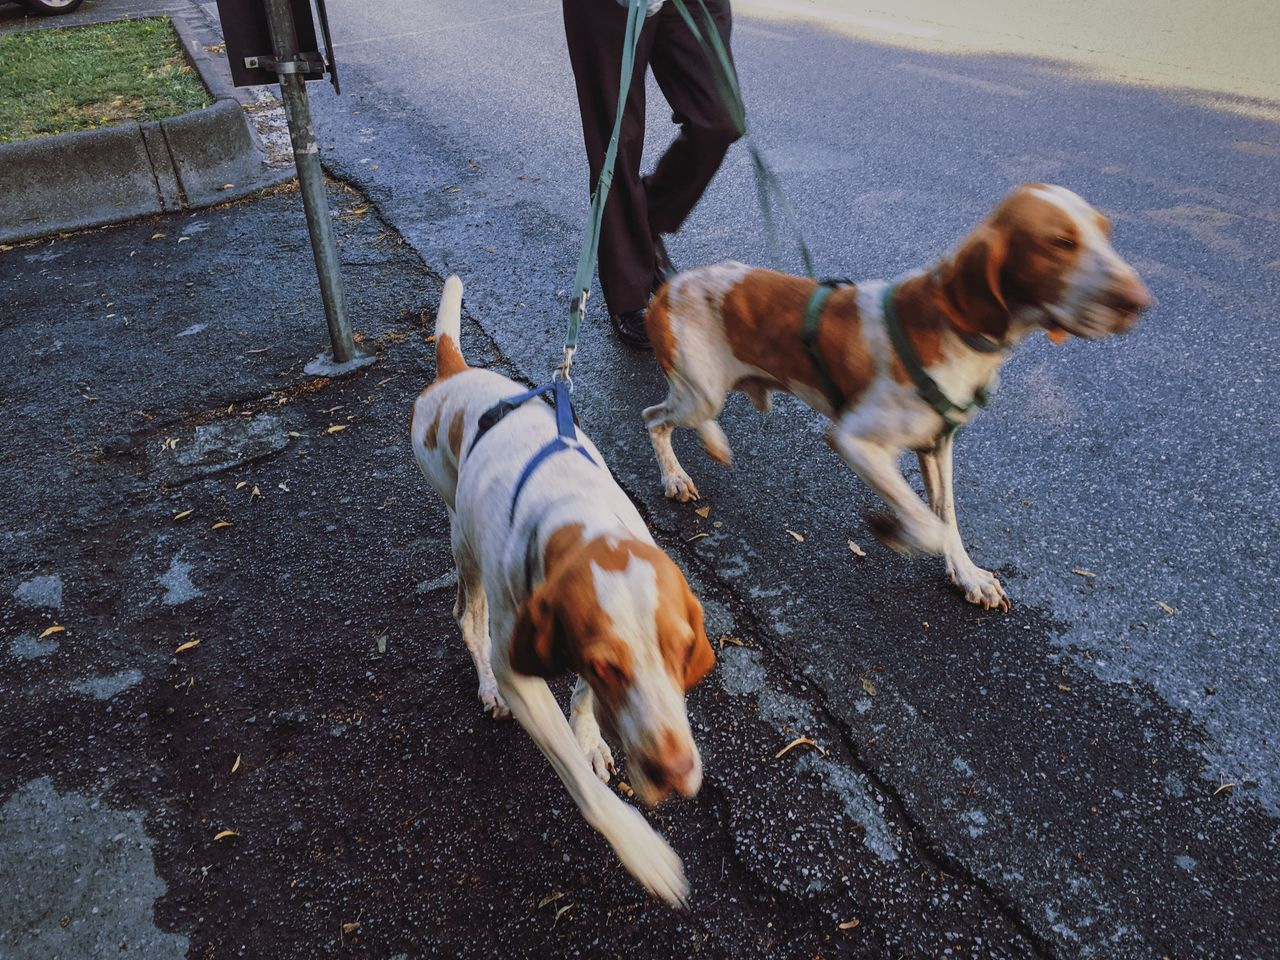 Walk the dogs every morning. Brown Bus Stop Countryside Dog Dogs Domestic Animals HOUNDS Leash Leashed Mammal Outdoors Road Street Tweegram Walk The Dog Walking The Dog White